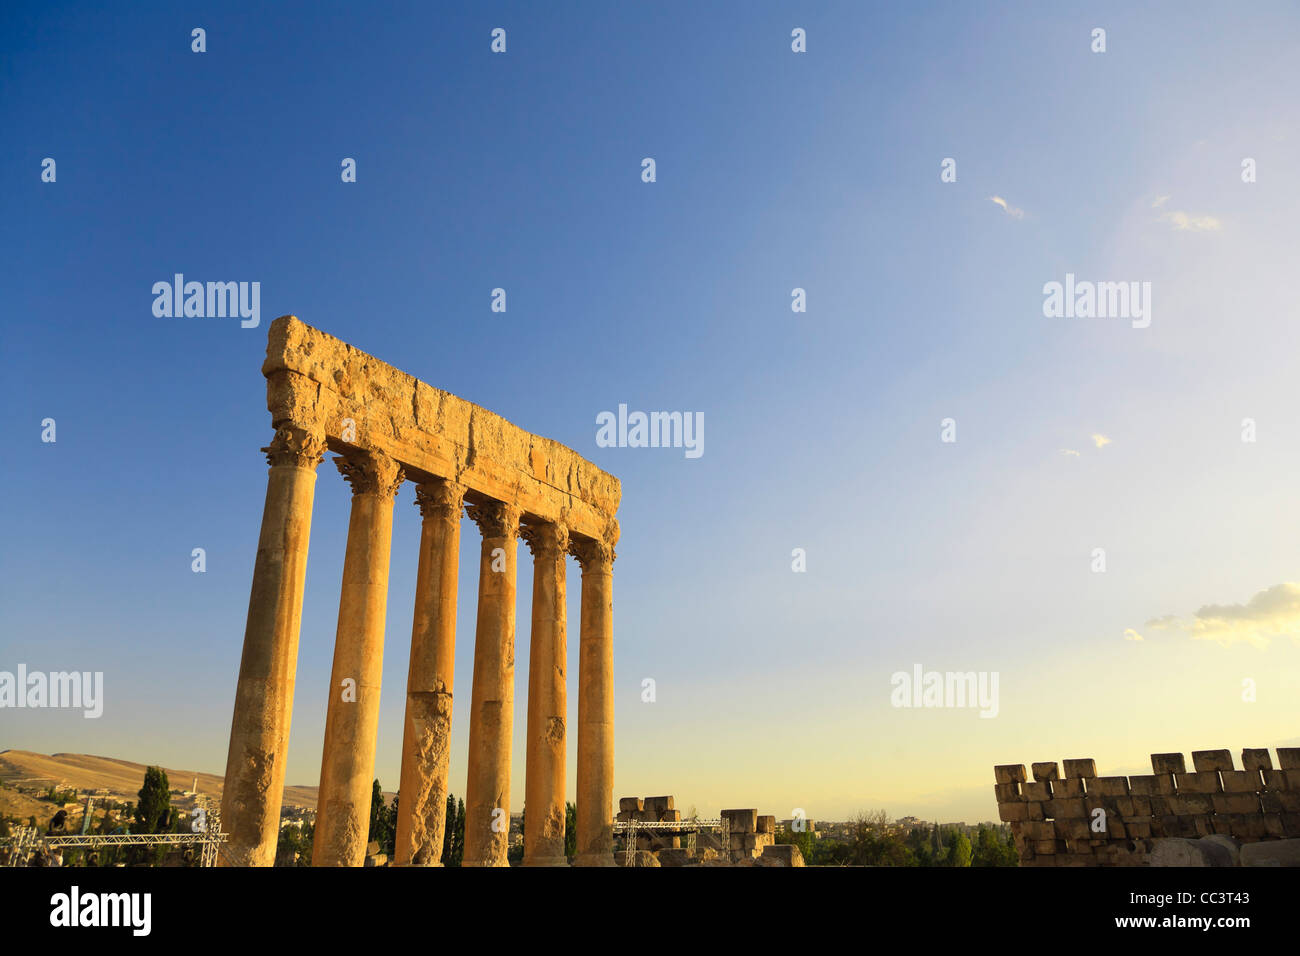 Liban, Baalbek, Temple de Jupiter Photo Stock